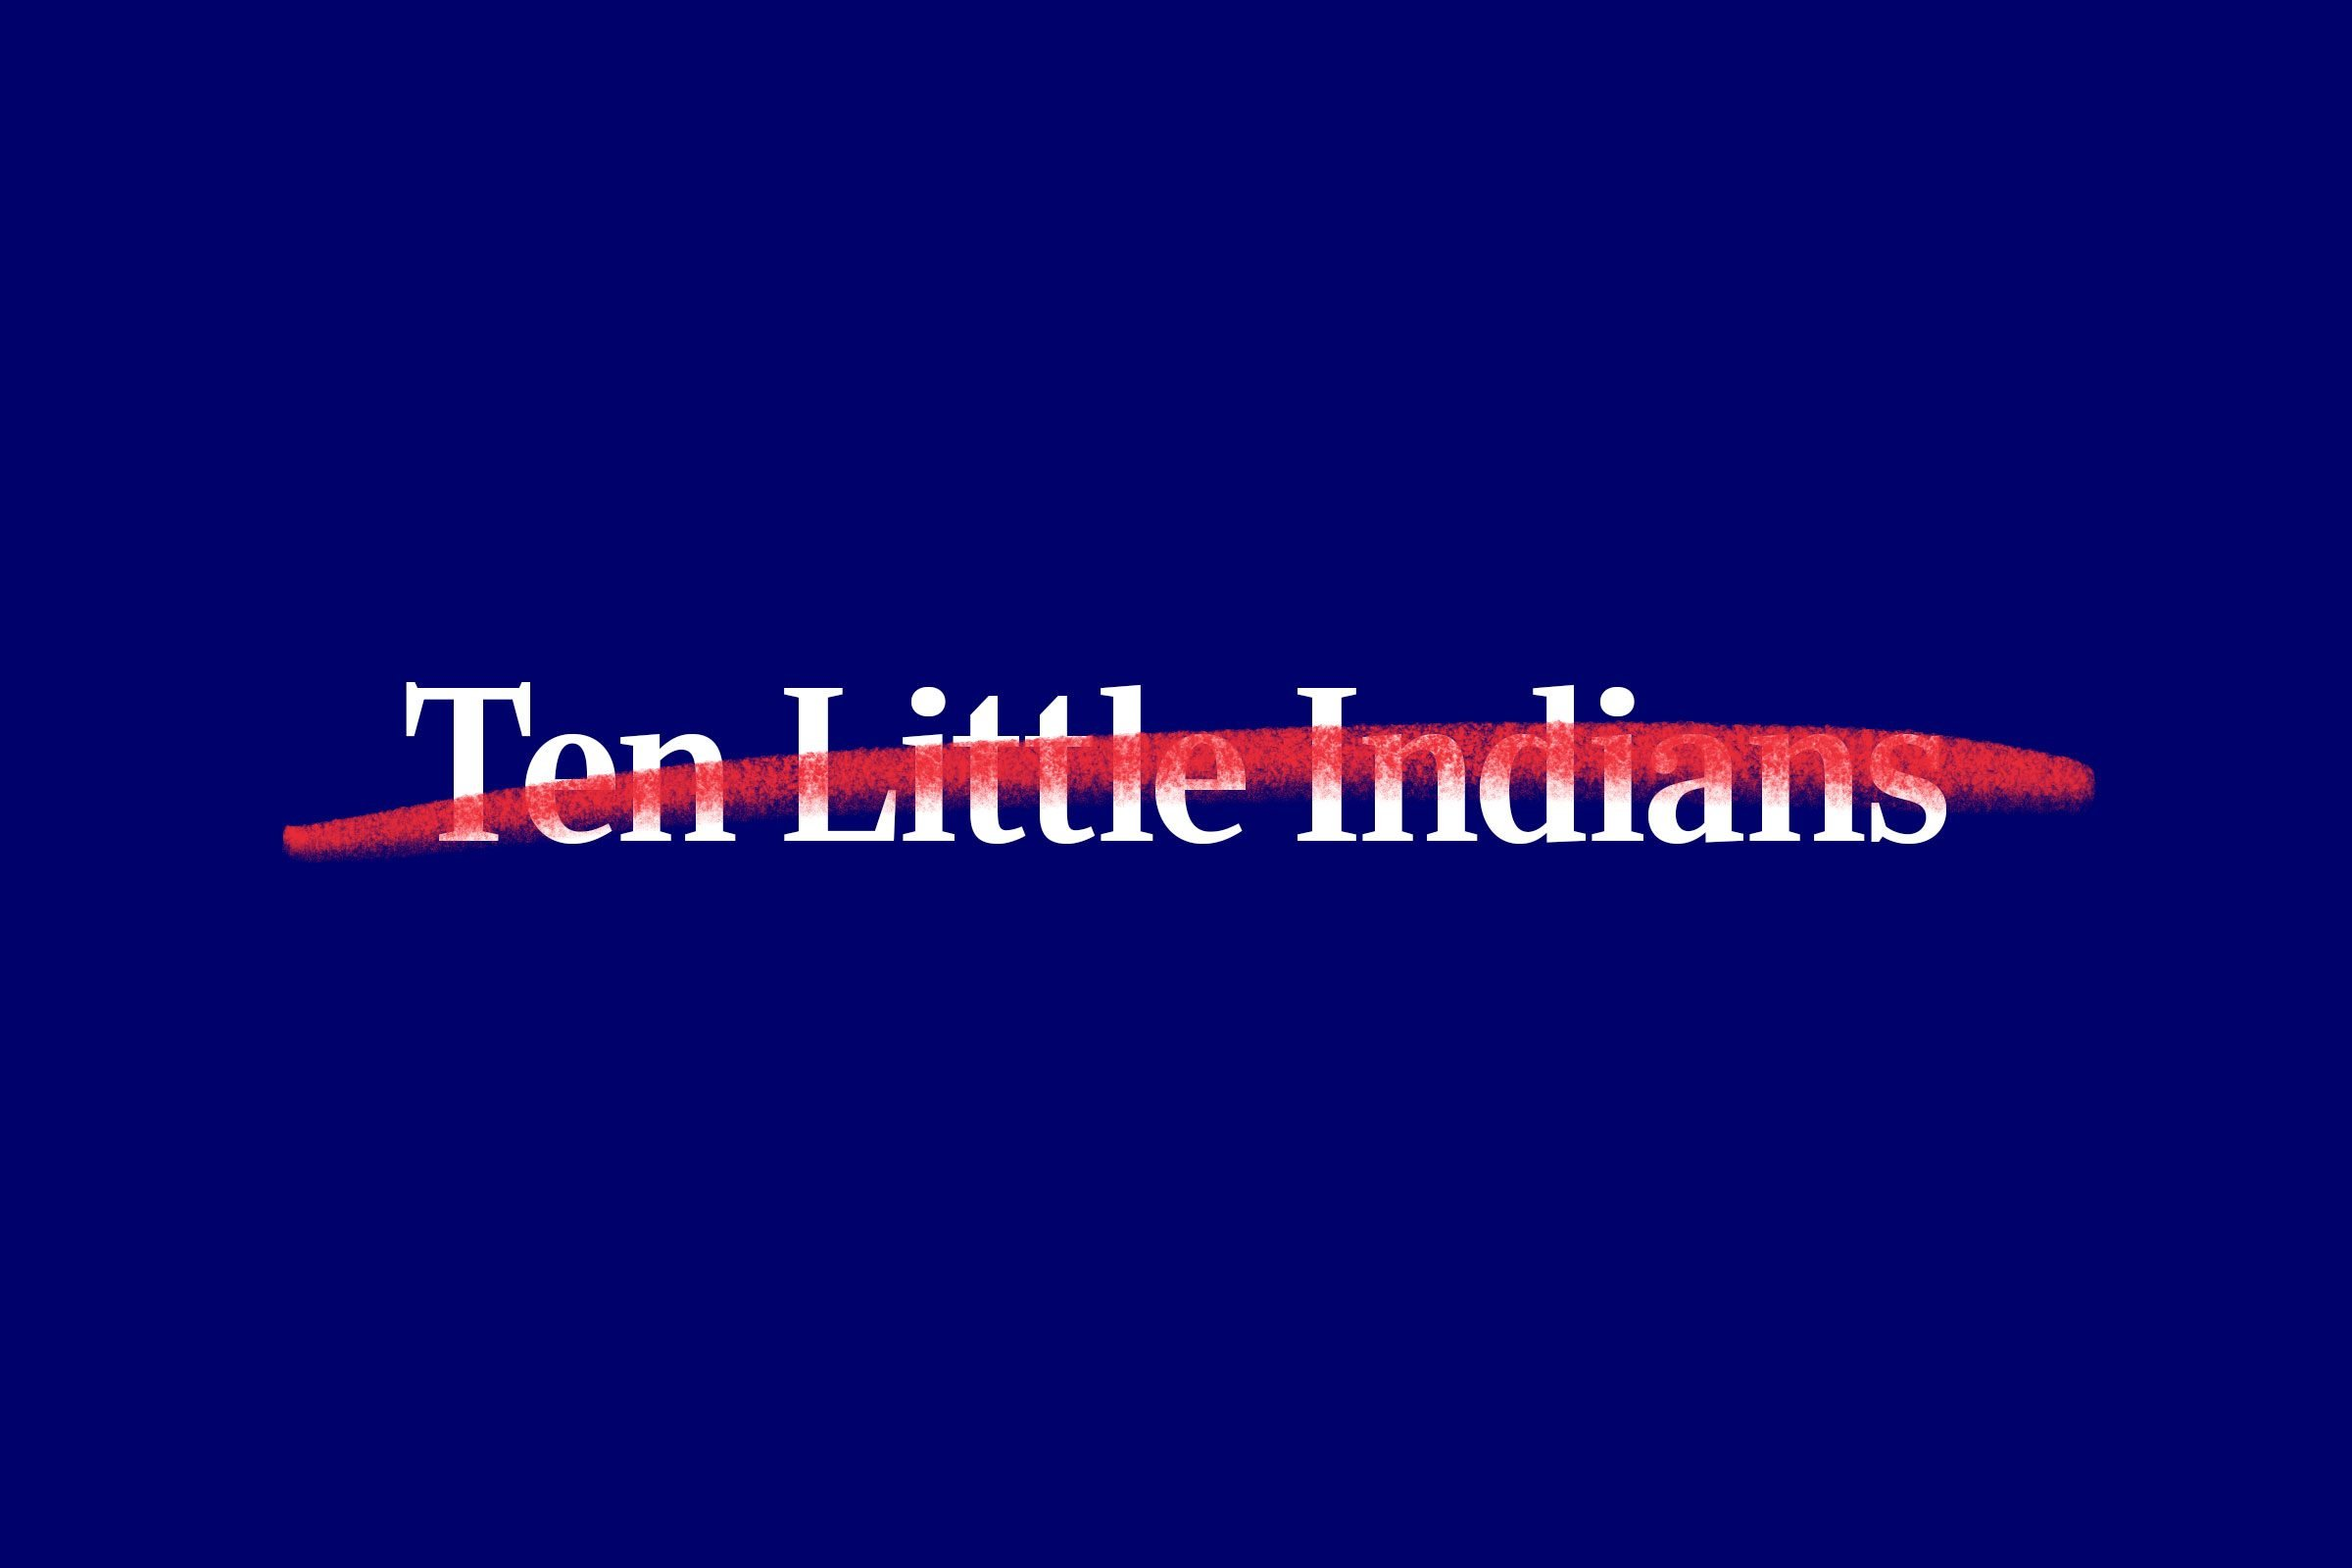 nursery rhyme title (Ten Little Indians) with red strikethrough overlay